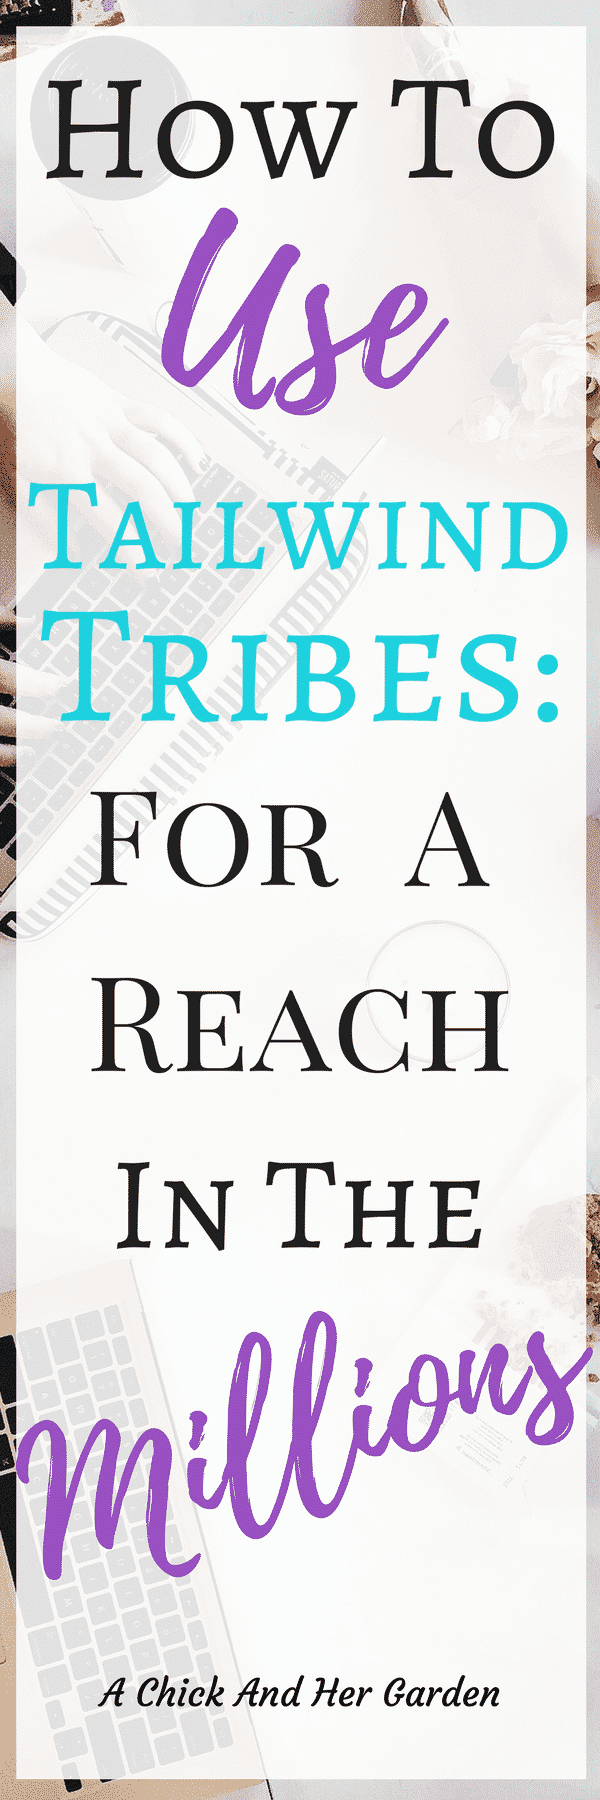 Pinterest can be a bloggers best friend when it comes to traffic! But it takes work. Tribes is now a saving grace for me! These tips go beyond the basic Pinterest how to! #bloggers #bloggingforbeginners #blogging #bloggingtips